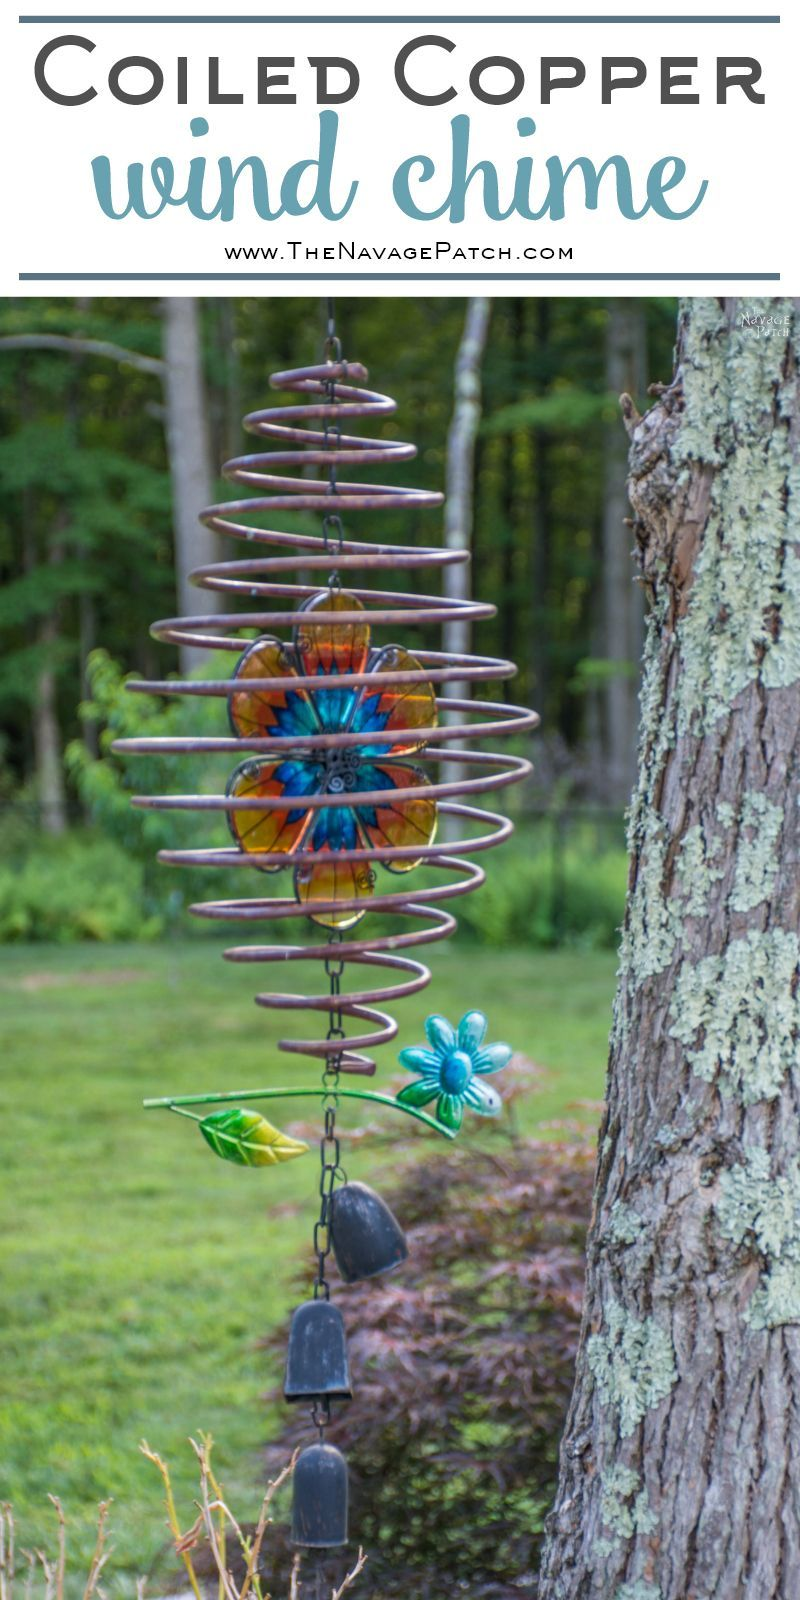 Coiled Copper Wind Chimes With Images Wind Chimes Diy Wind